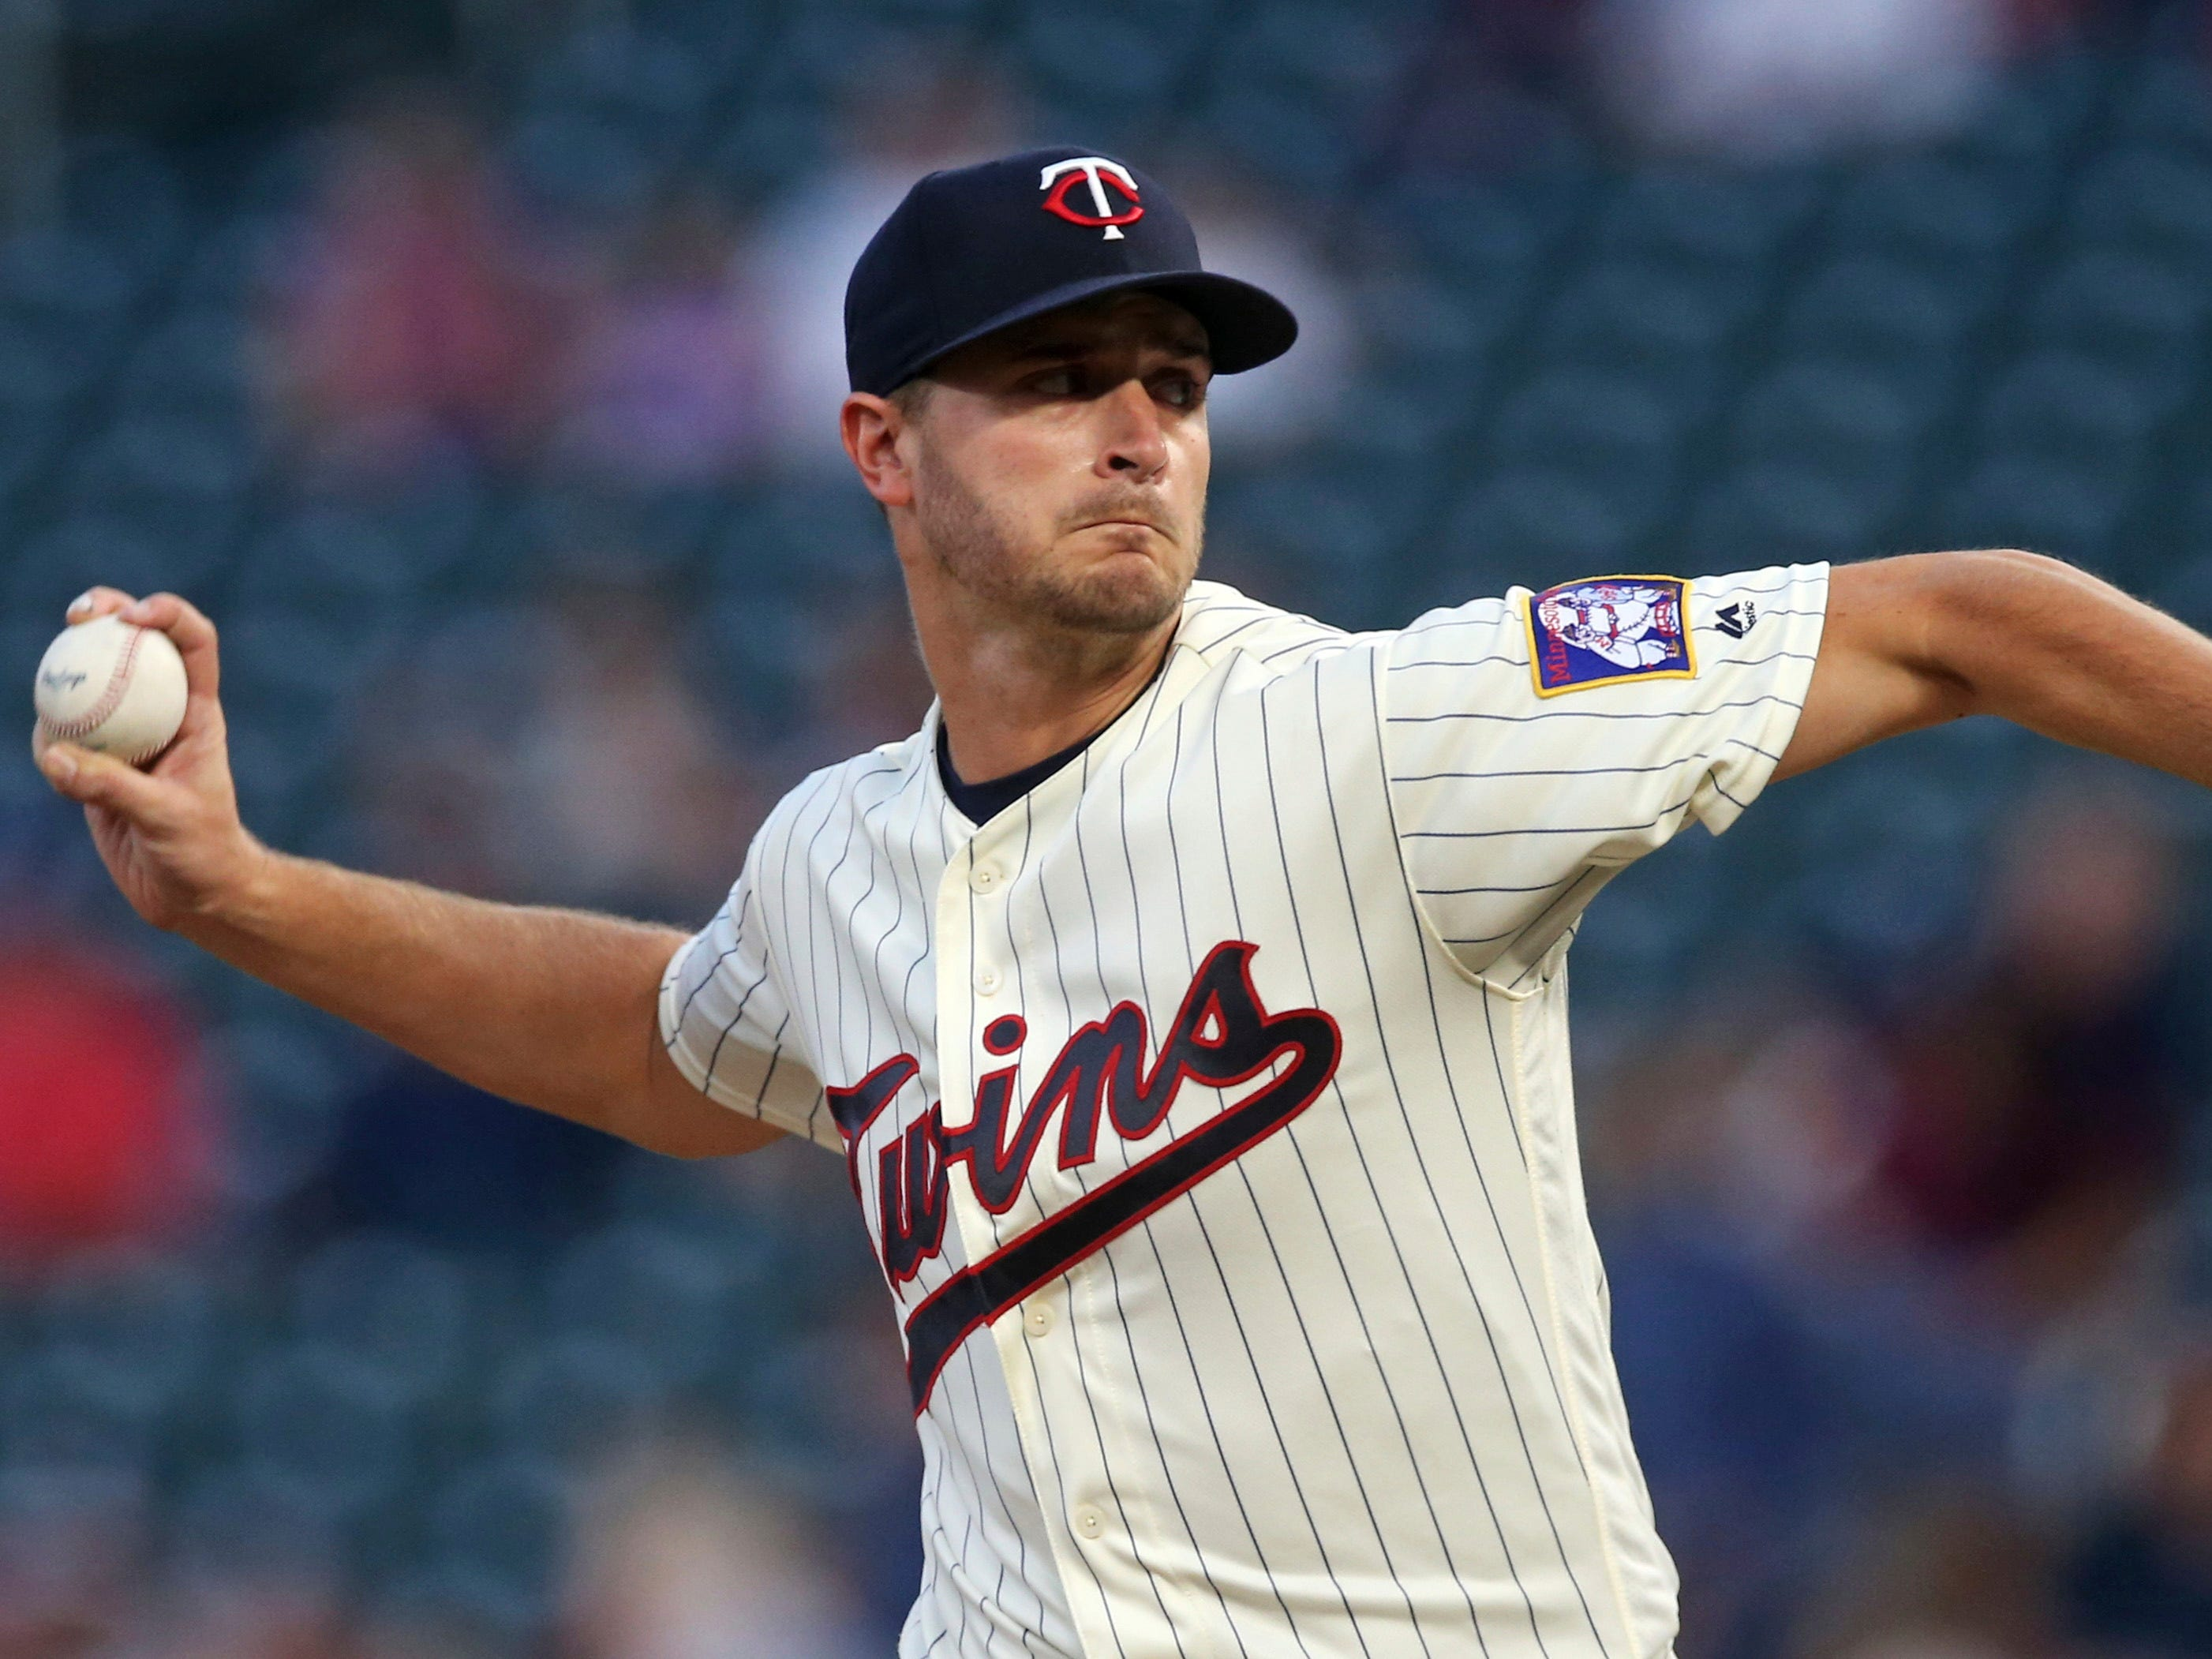 Minnesota Twins pitcher Jake Odorizzi throws against the New York Yankees in the first inning of a baseball game Wednesday, Sept. 12, 2018, in Minneapolis.